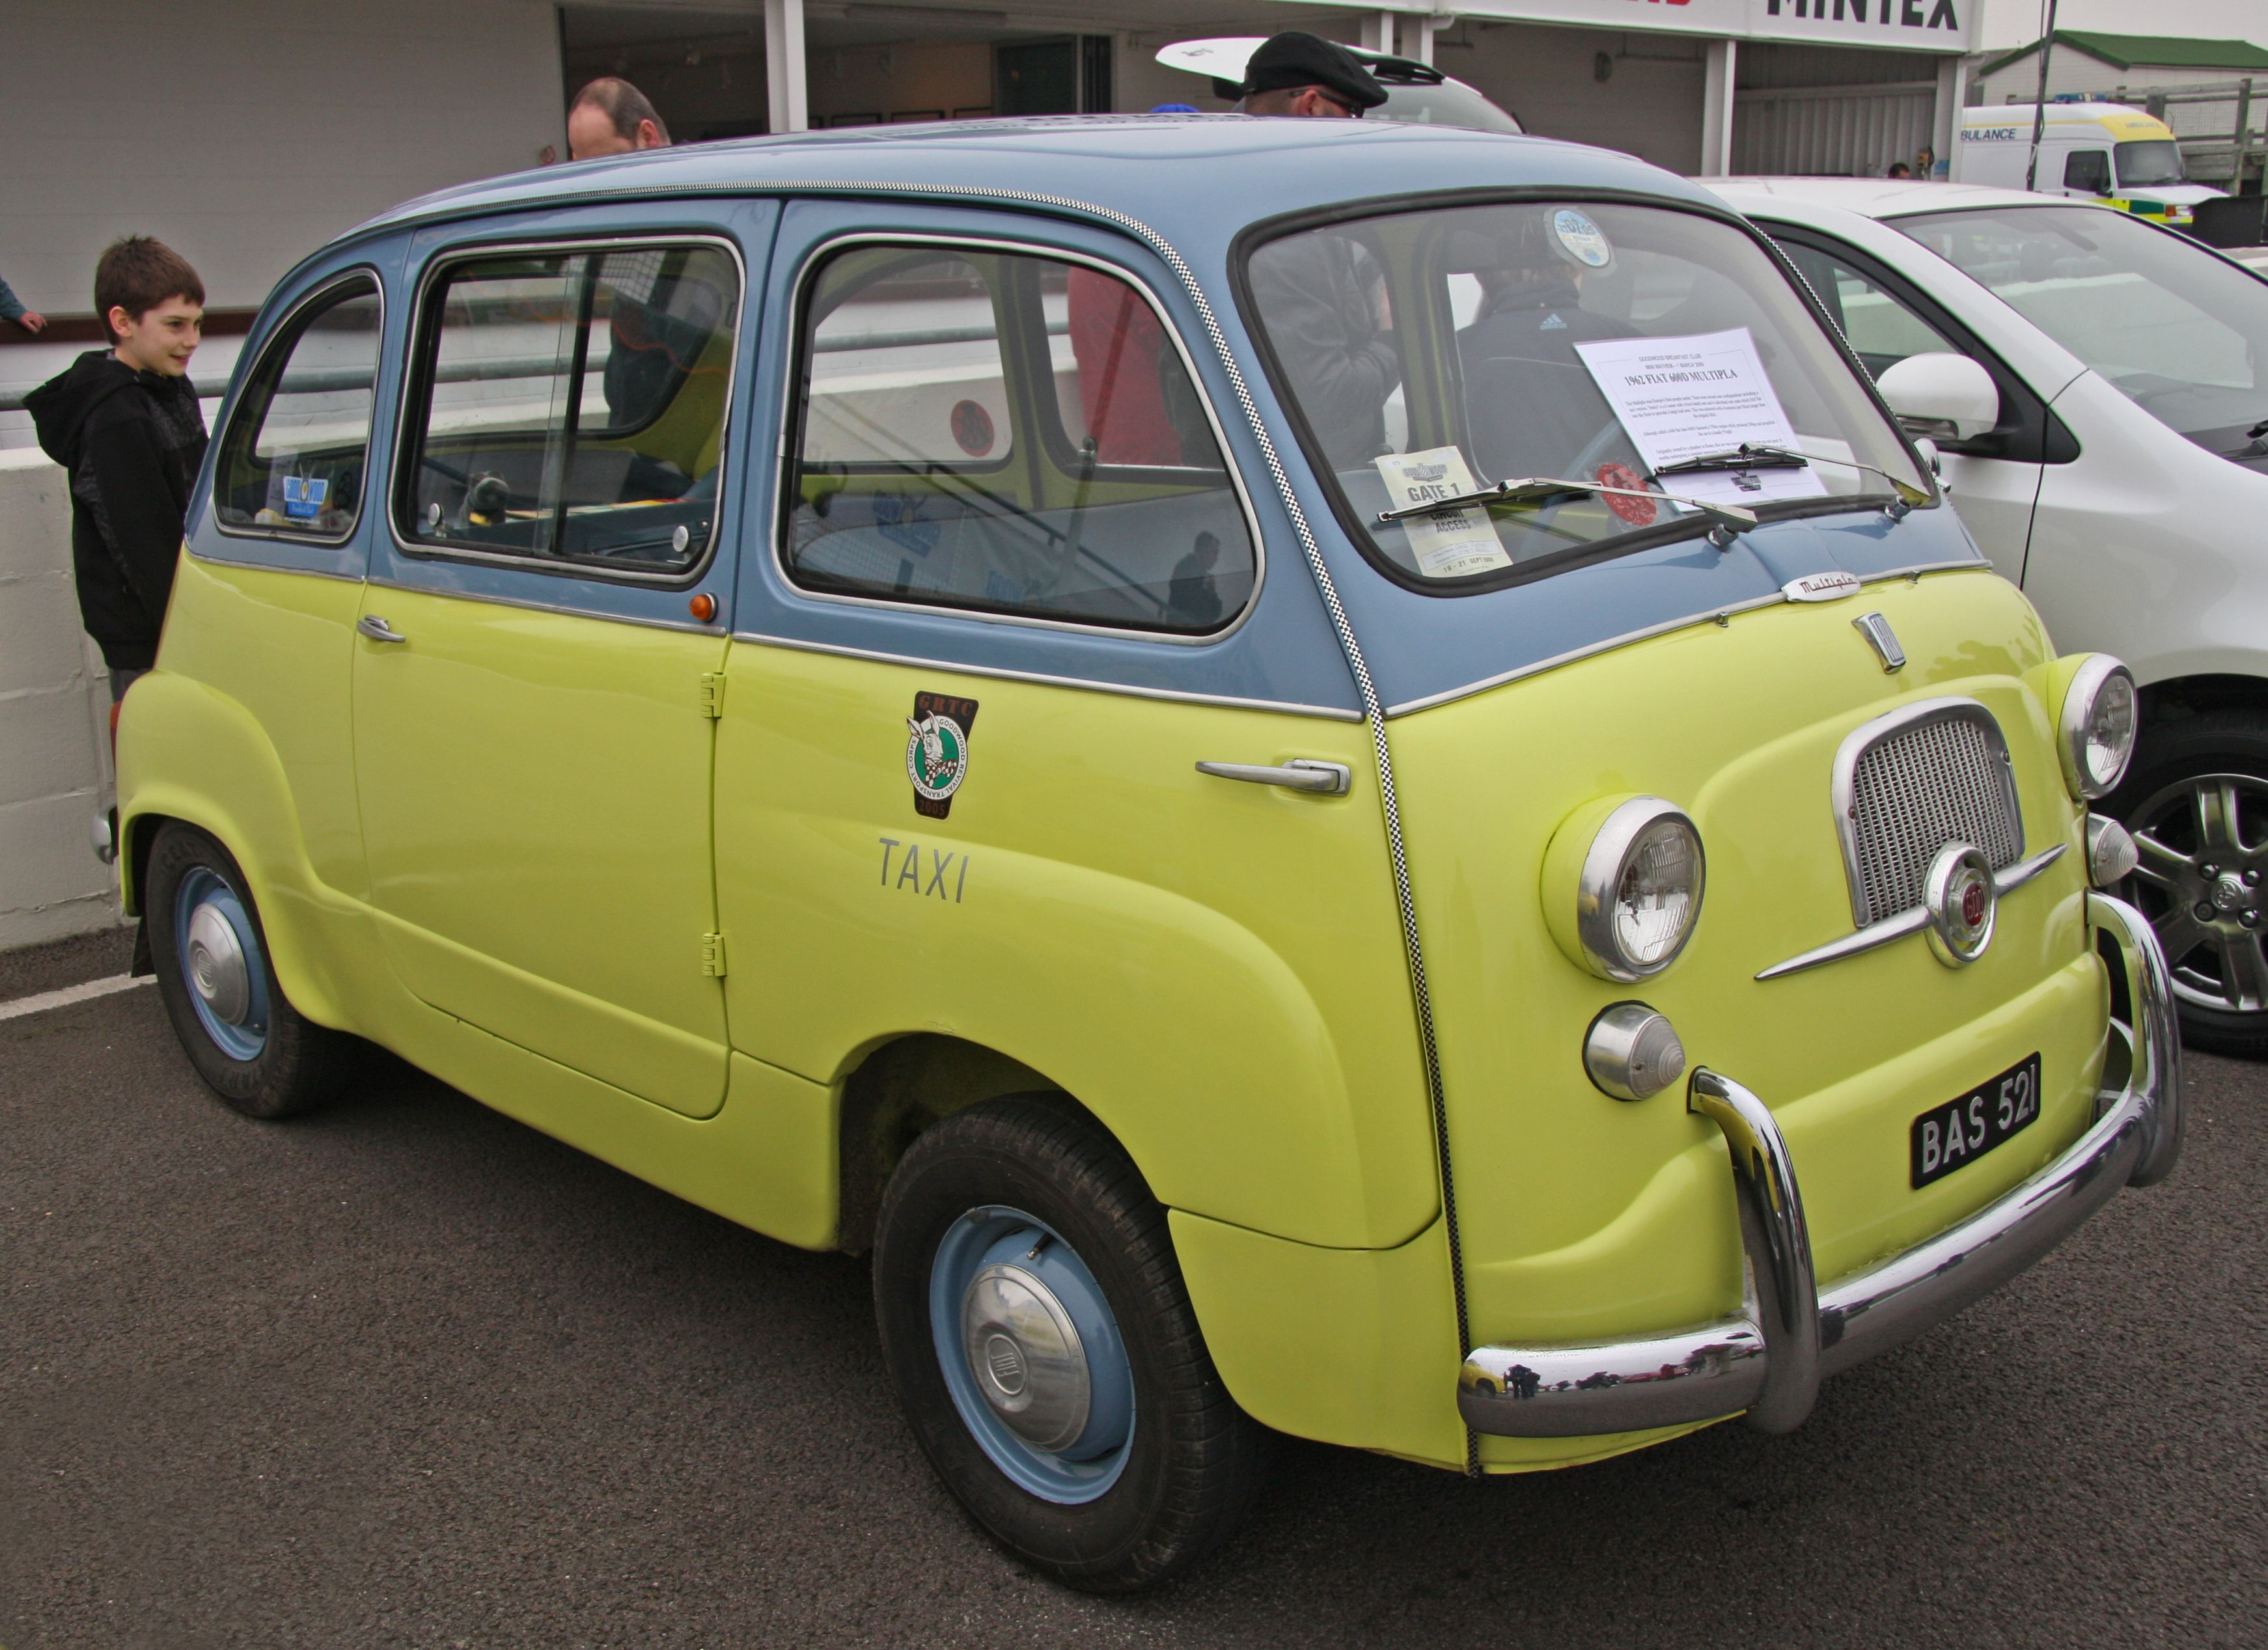 fiat - Google Search | TRANSPORTATION IDEAS / VINTAGE VEHICLES ...